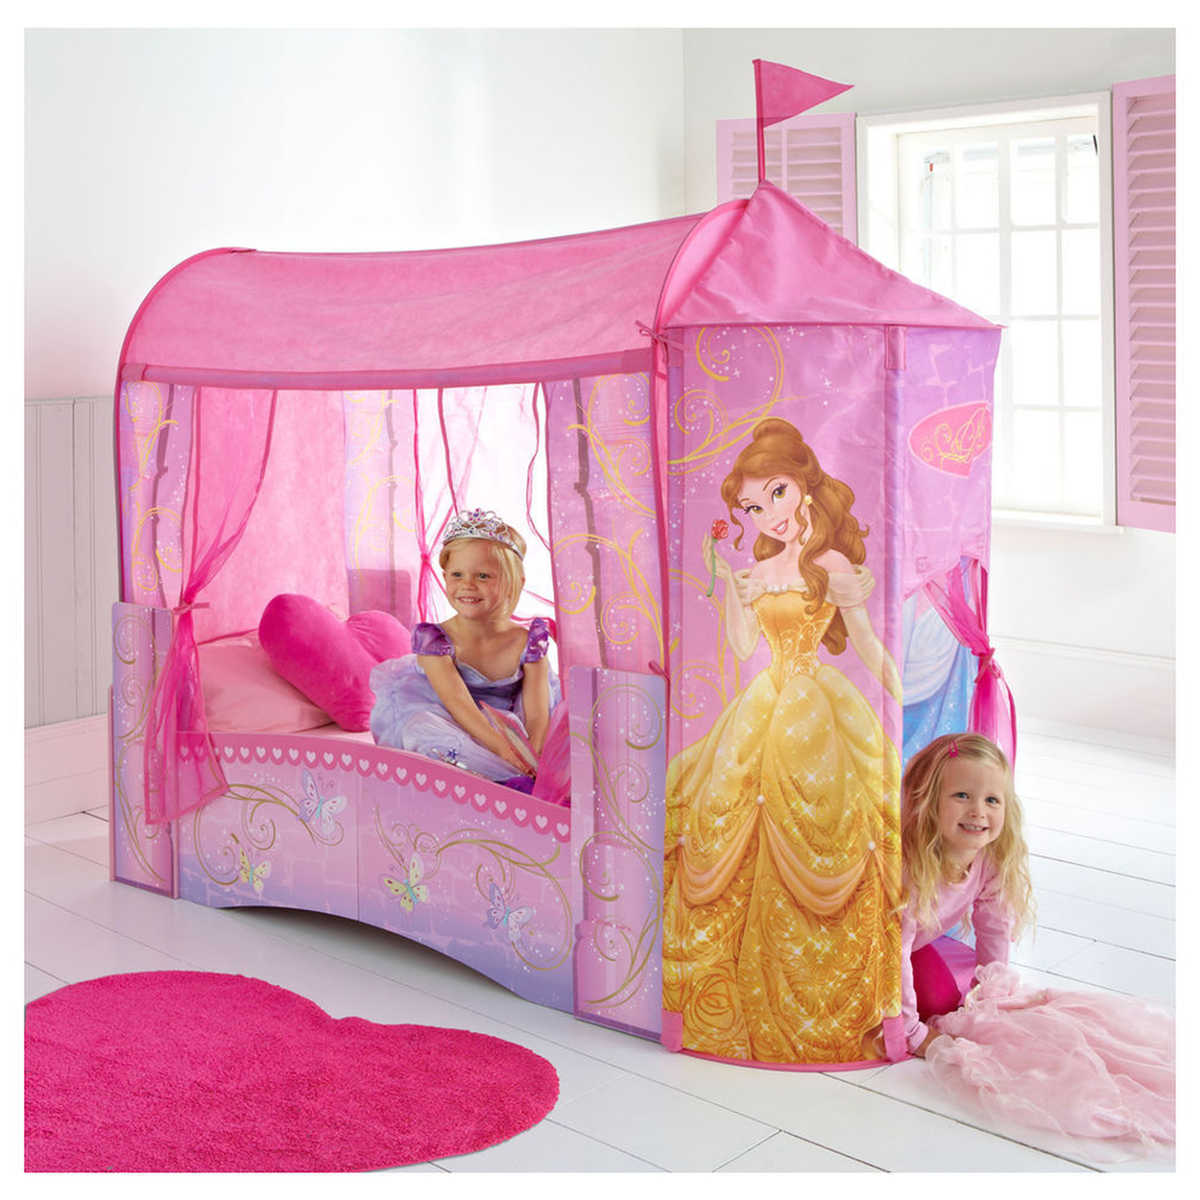 Disney Princess Castle Toddler Bed